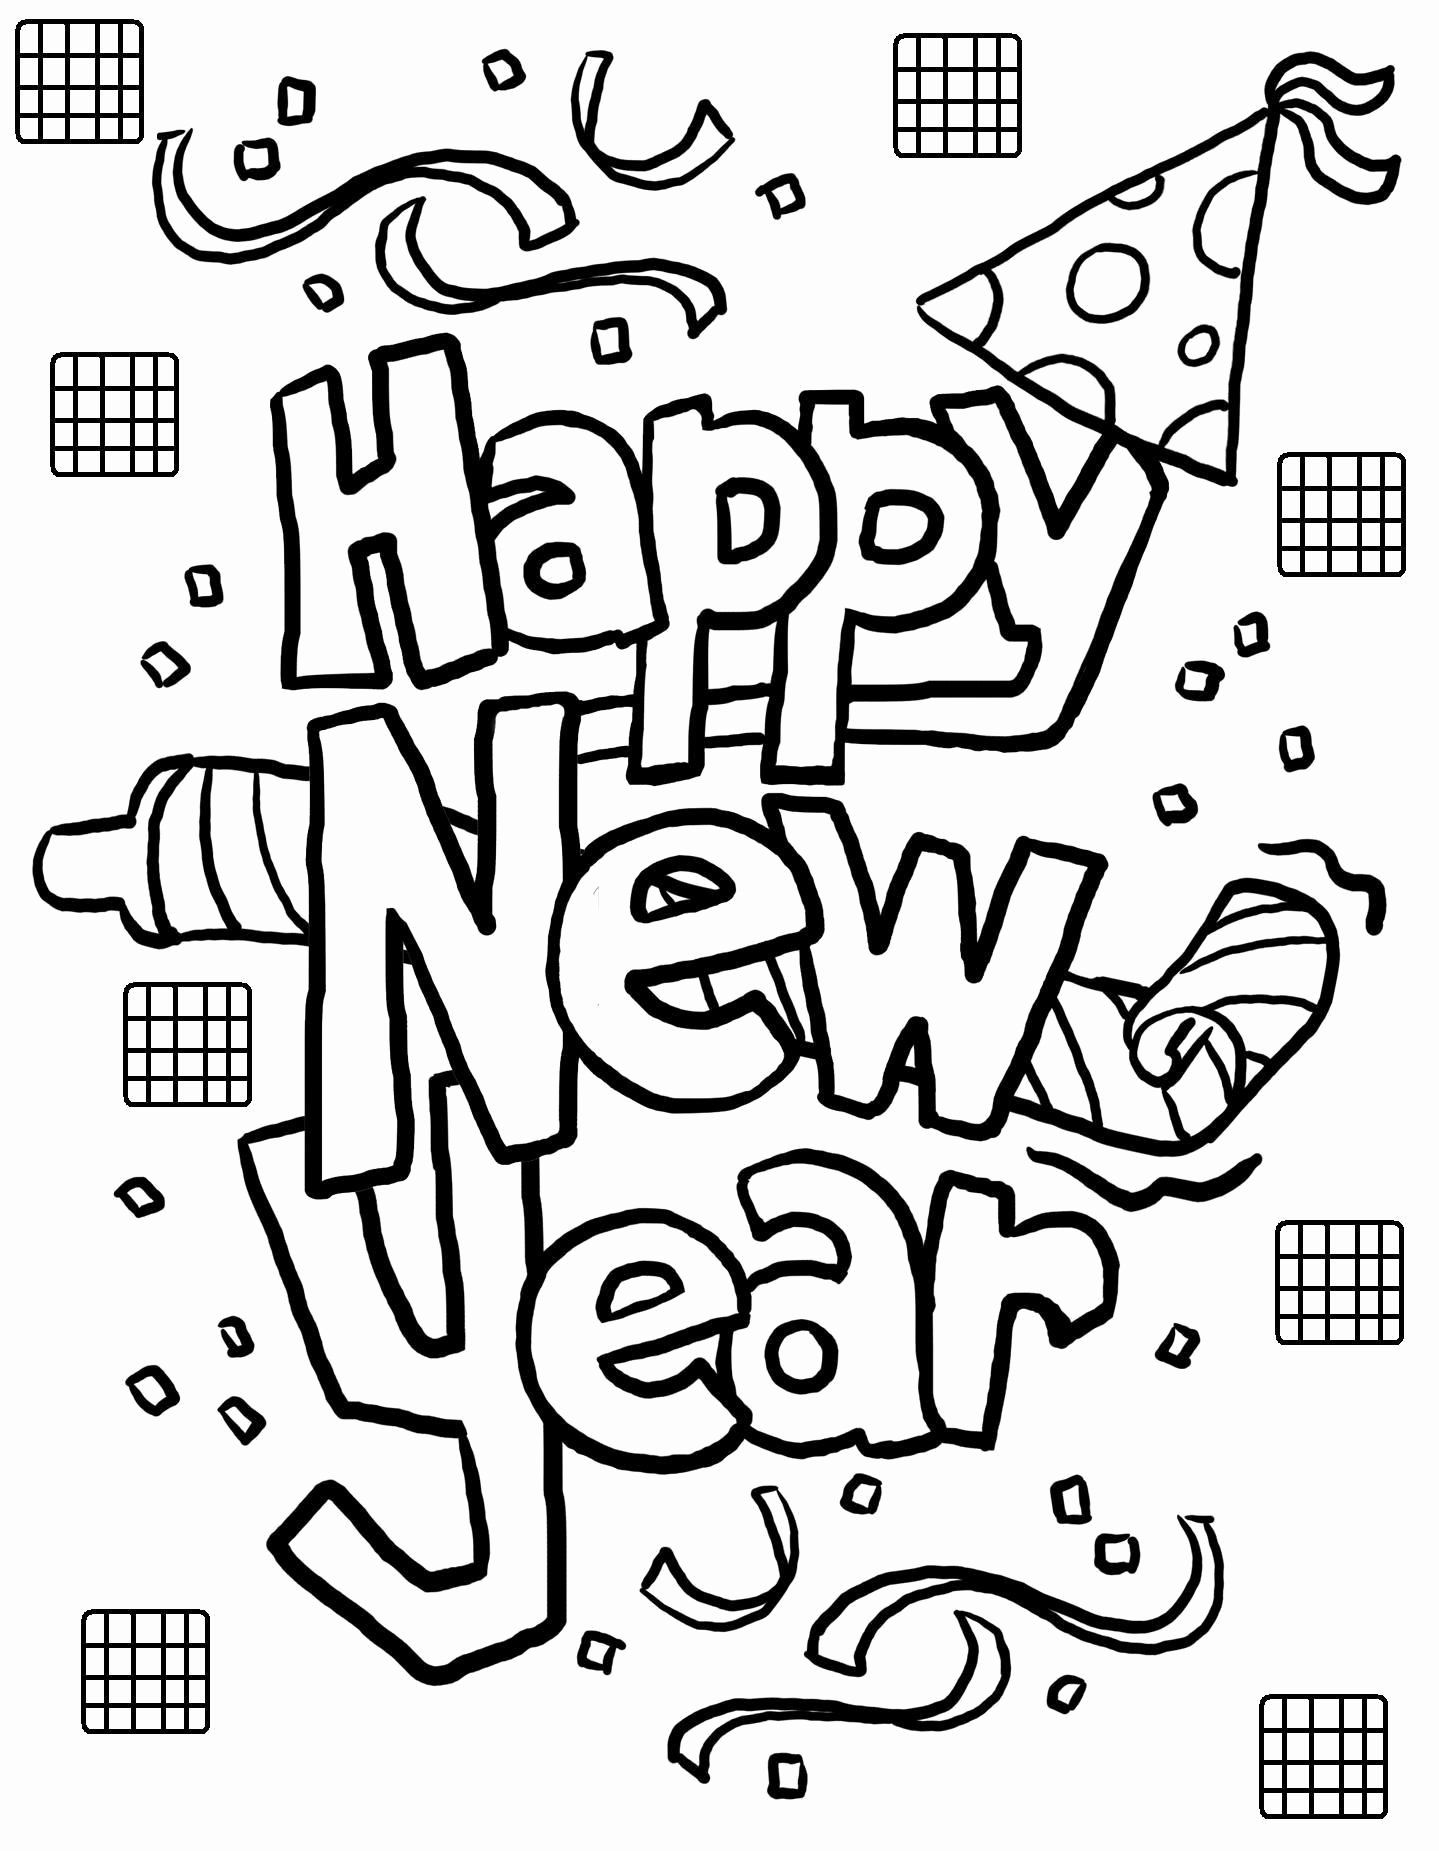 New Years Coloring Page Inspirational Free Printable New Years Coloring Pages For In 2020 New Year Coloring Pages Coloring Pages Inspirational Coloring Pages For Kids